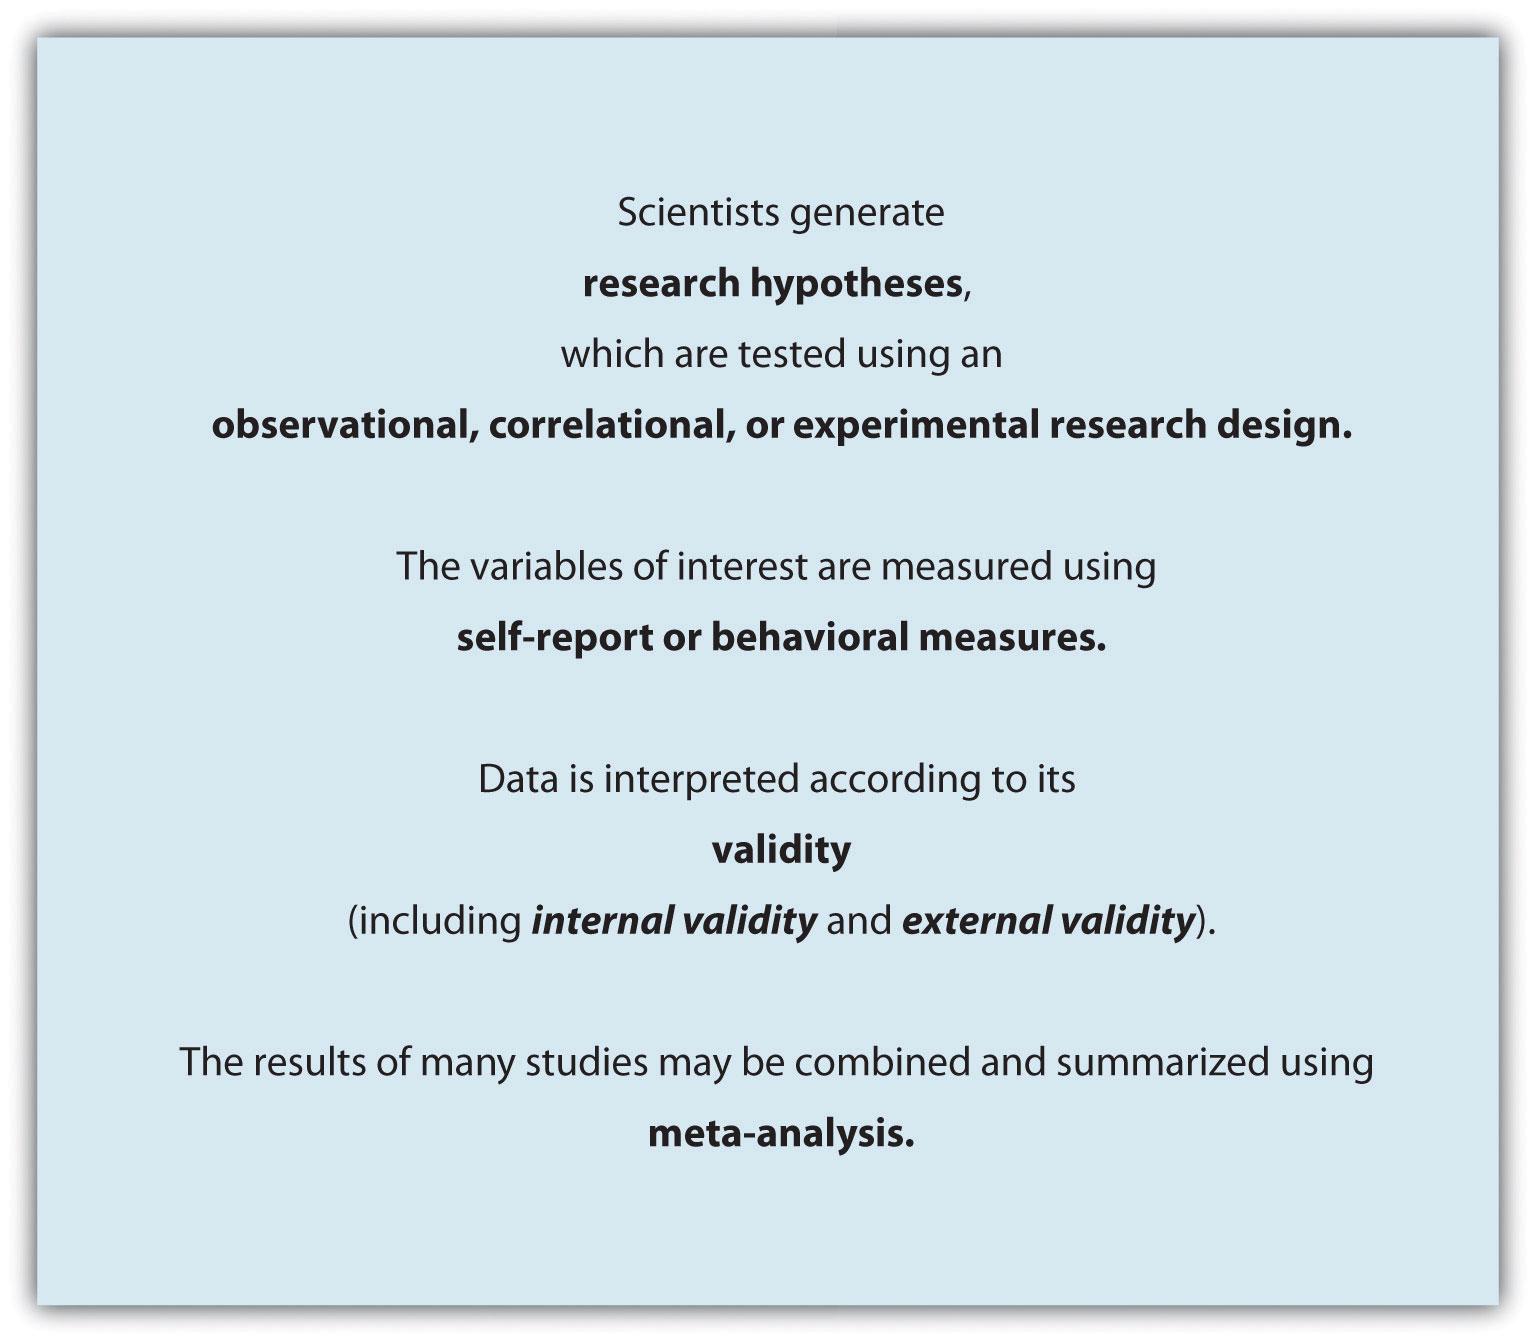 Scientists generate research hypotheses, which are tested using an observational, correlational, or experimental research design. The variables of interest are measured using self-report or behavioral measures. Data is interpreted according to its validity (including internal validity and external validity). The results of many studies may be combined and summarized using meta-analysis.